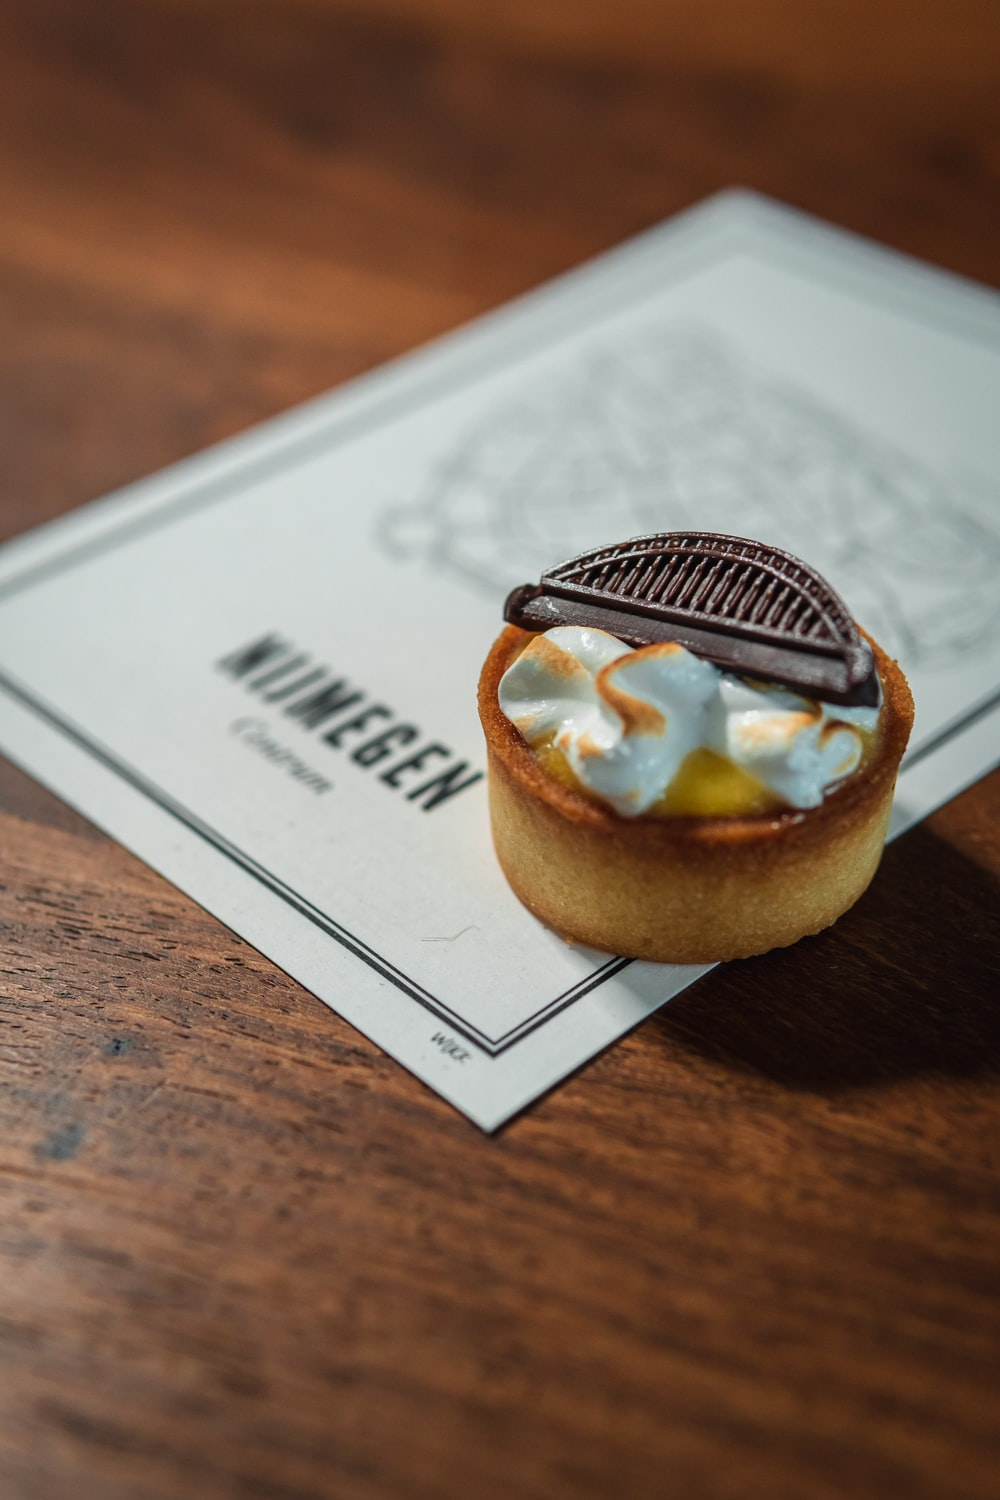 brown and white pastry on white paper